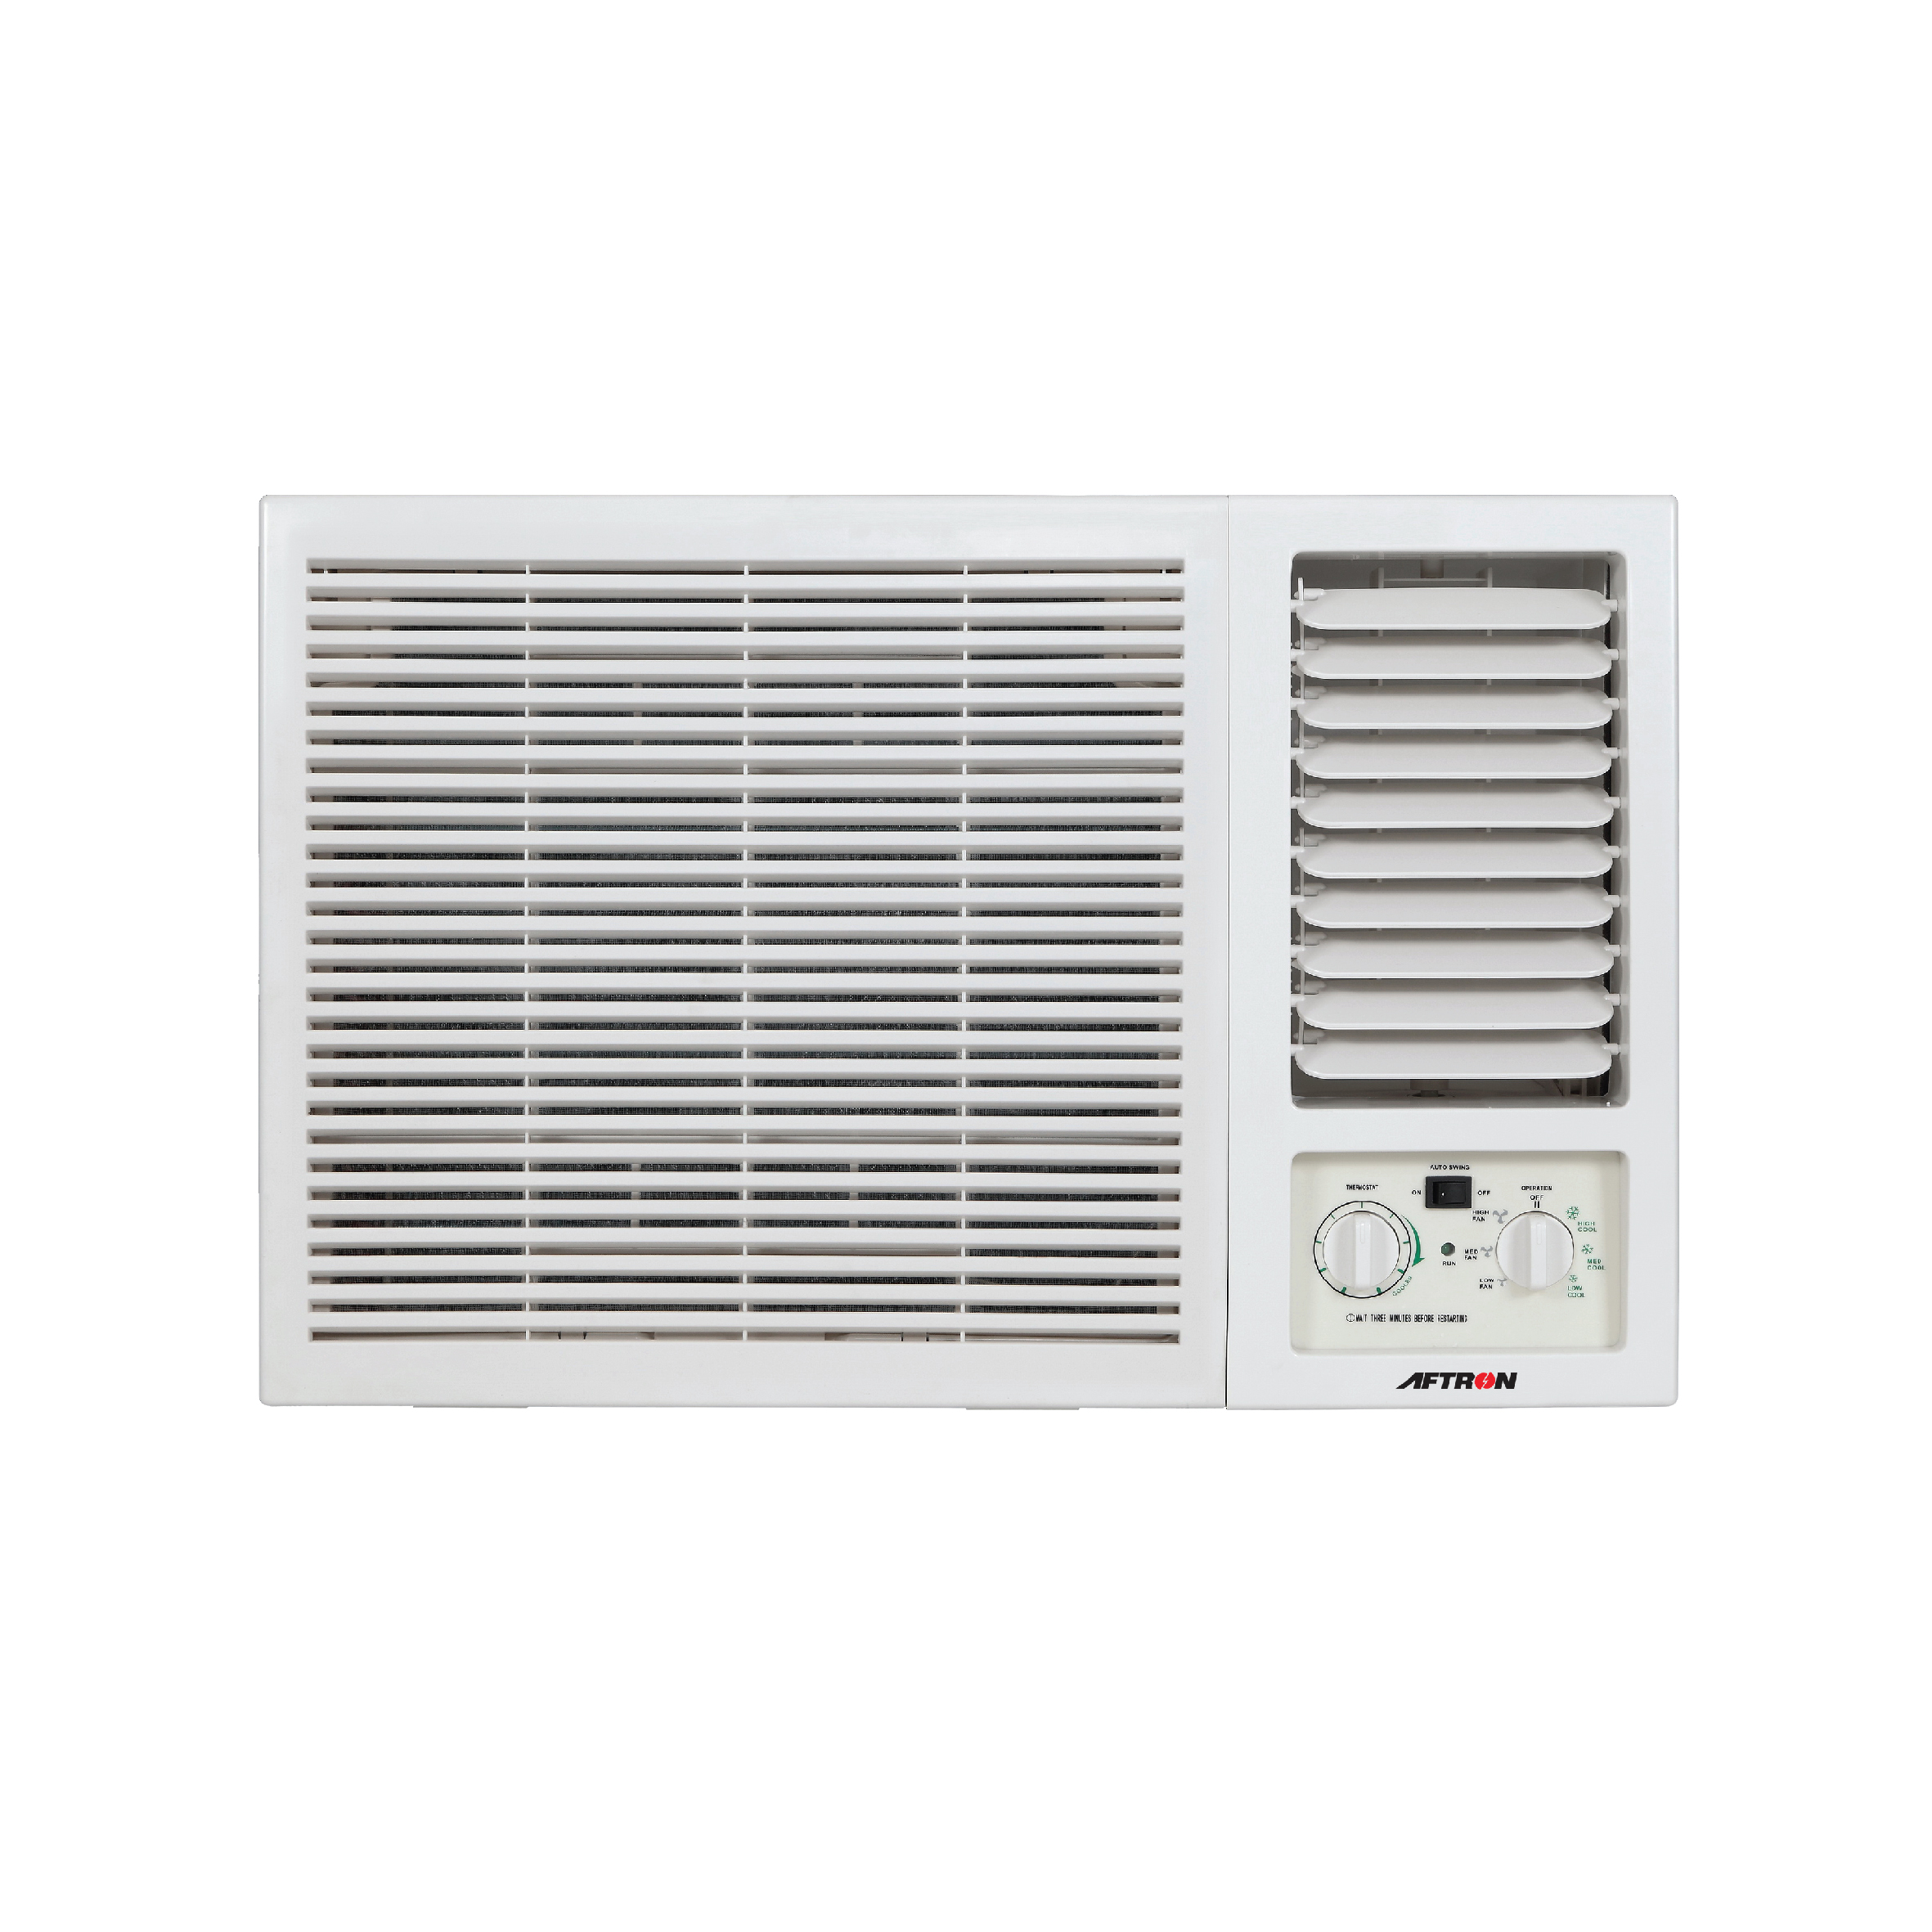 Aftron 1.5 Ton Window AC AFA1890